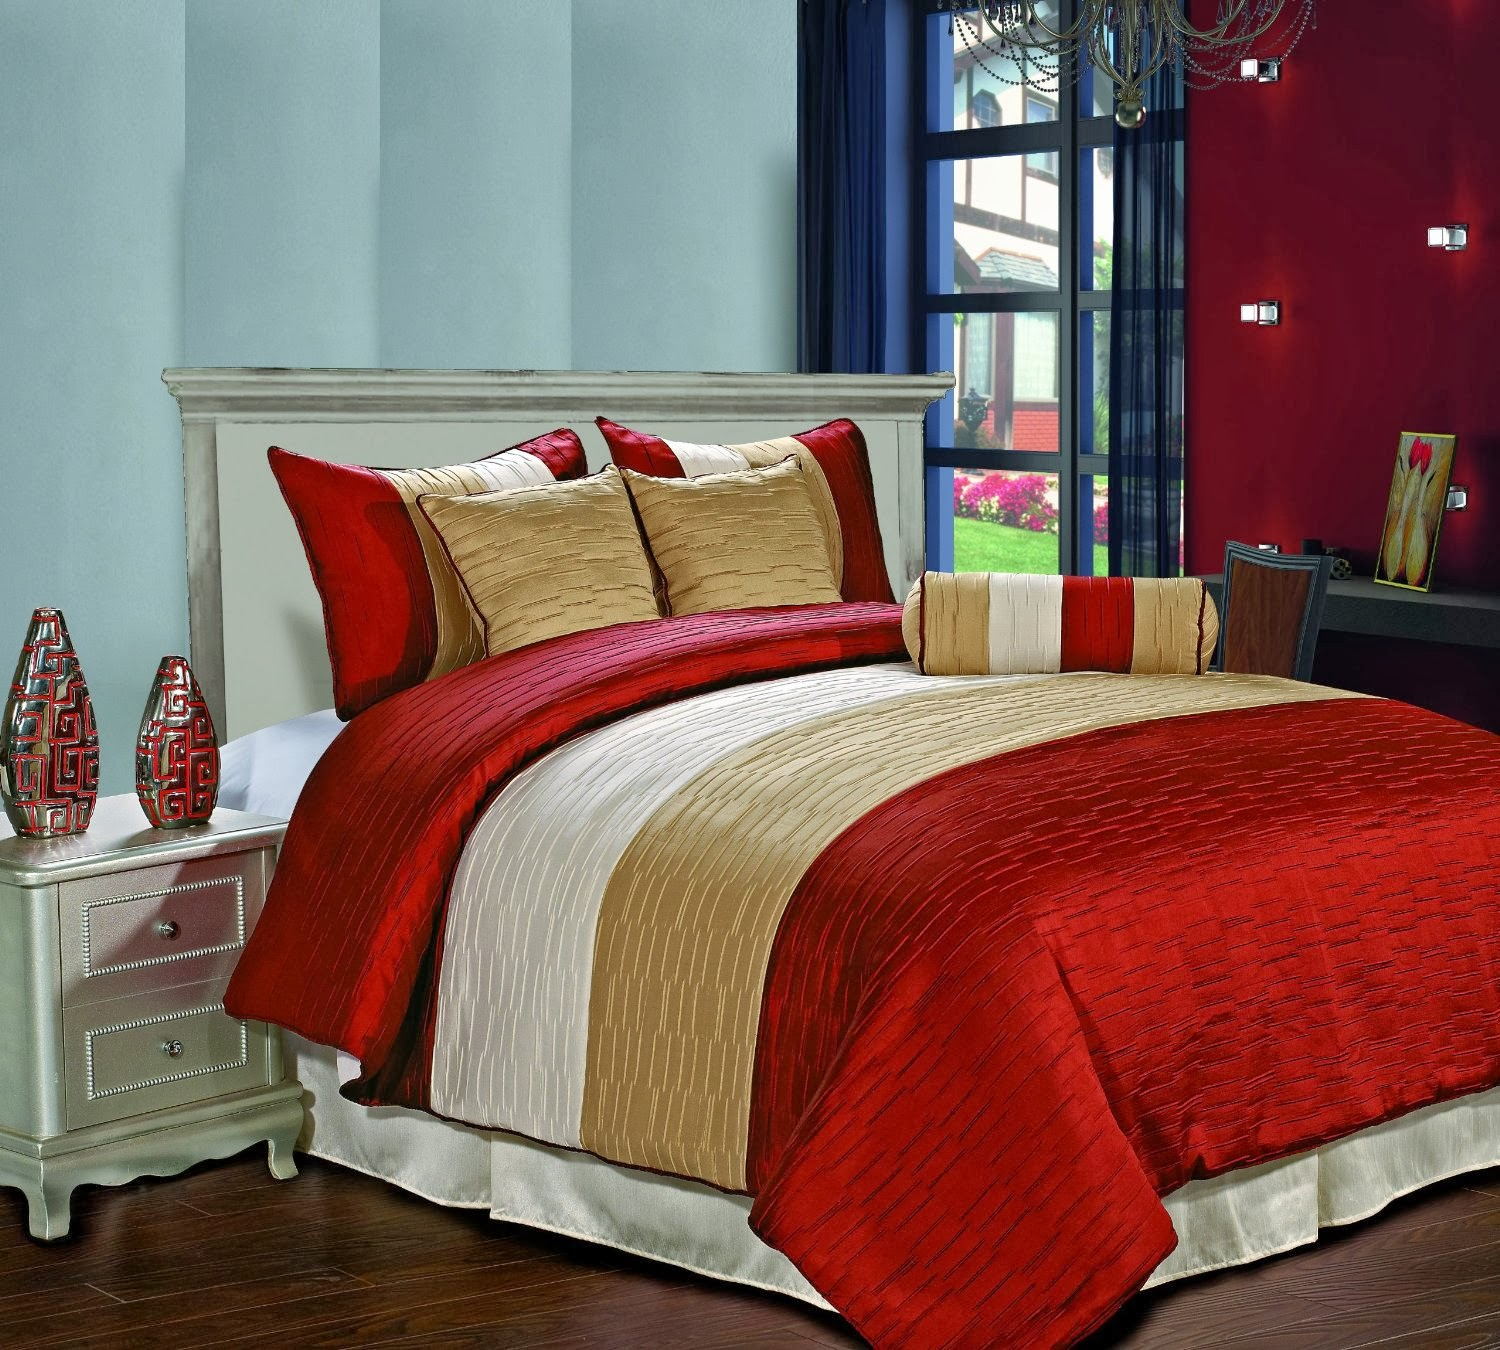 Red And Beige Cream Bedding Ease Bedding With Style: red and cream bedroom ideas